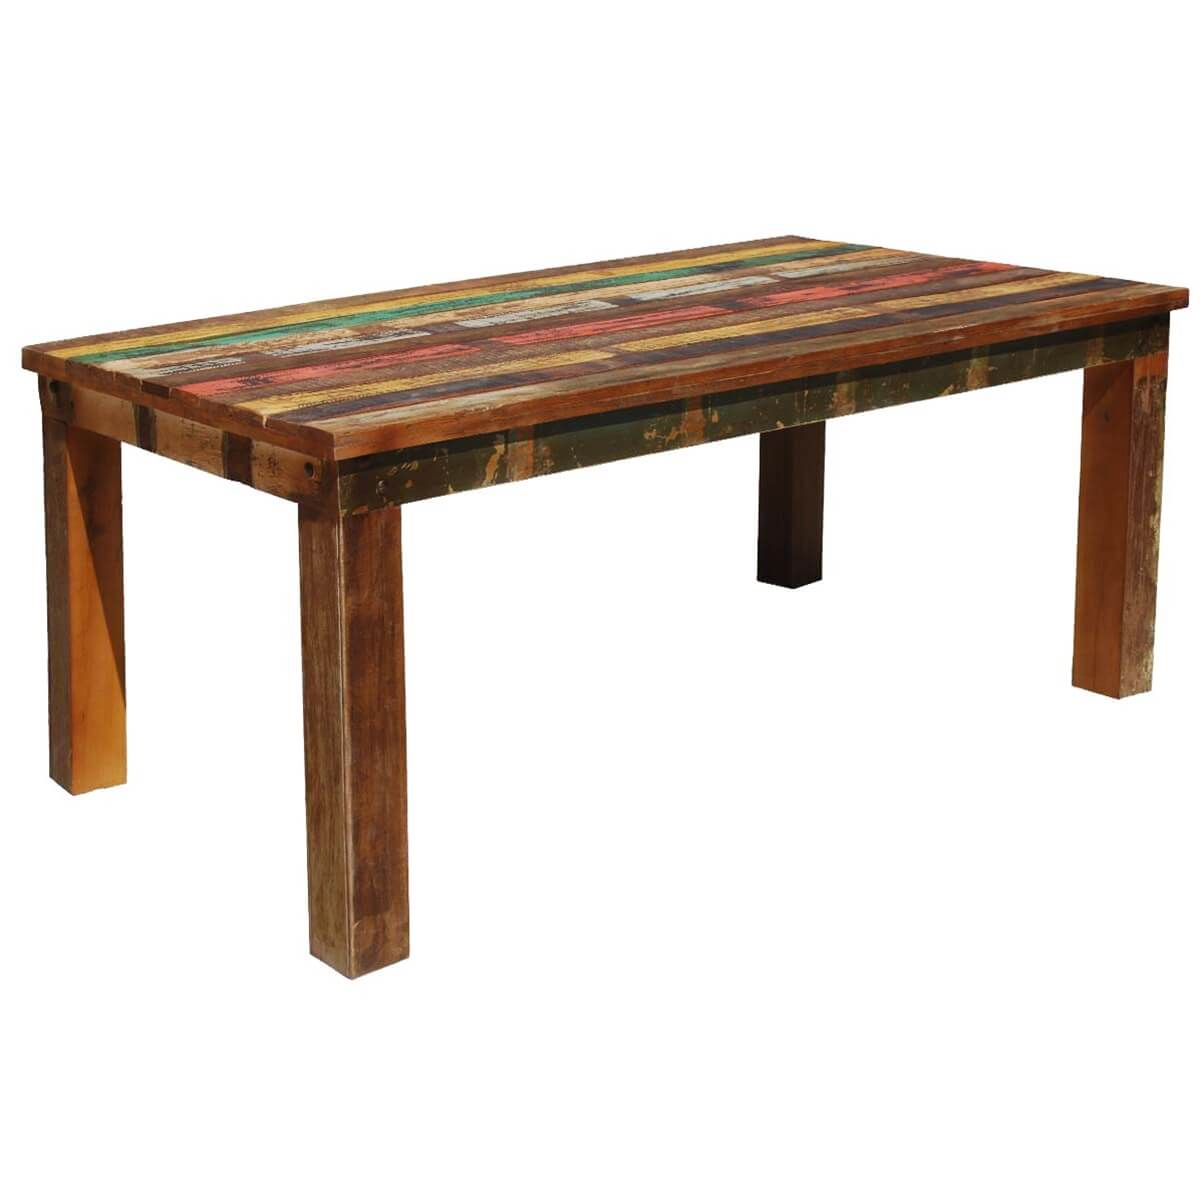 Wooden Dinning Table: Appalachian Rustic Reclaimed Wood Striped Dining Table